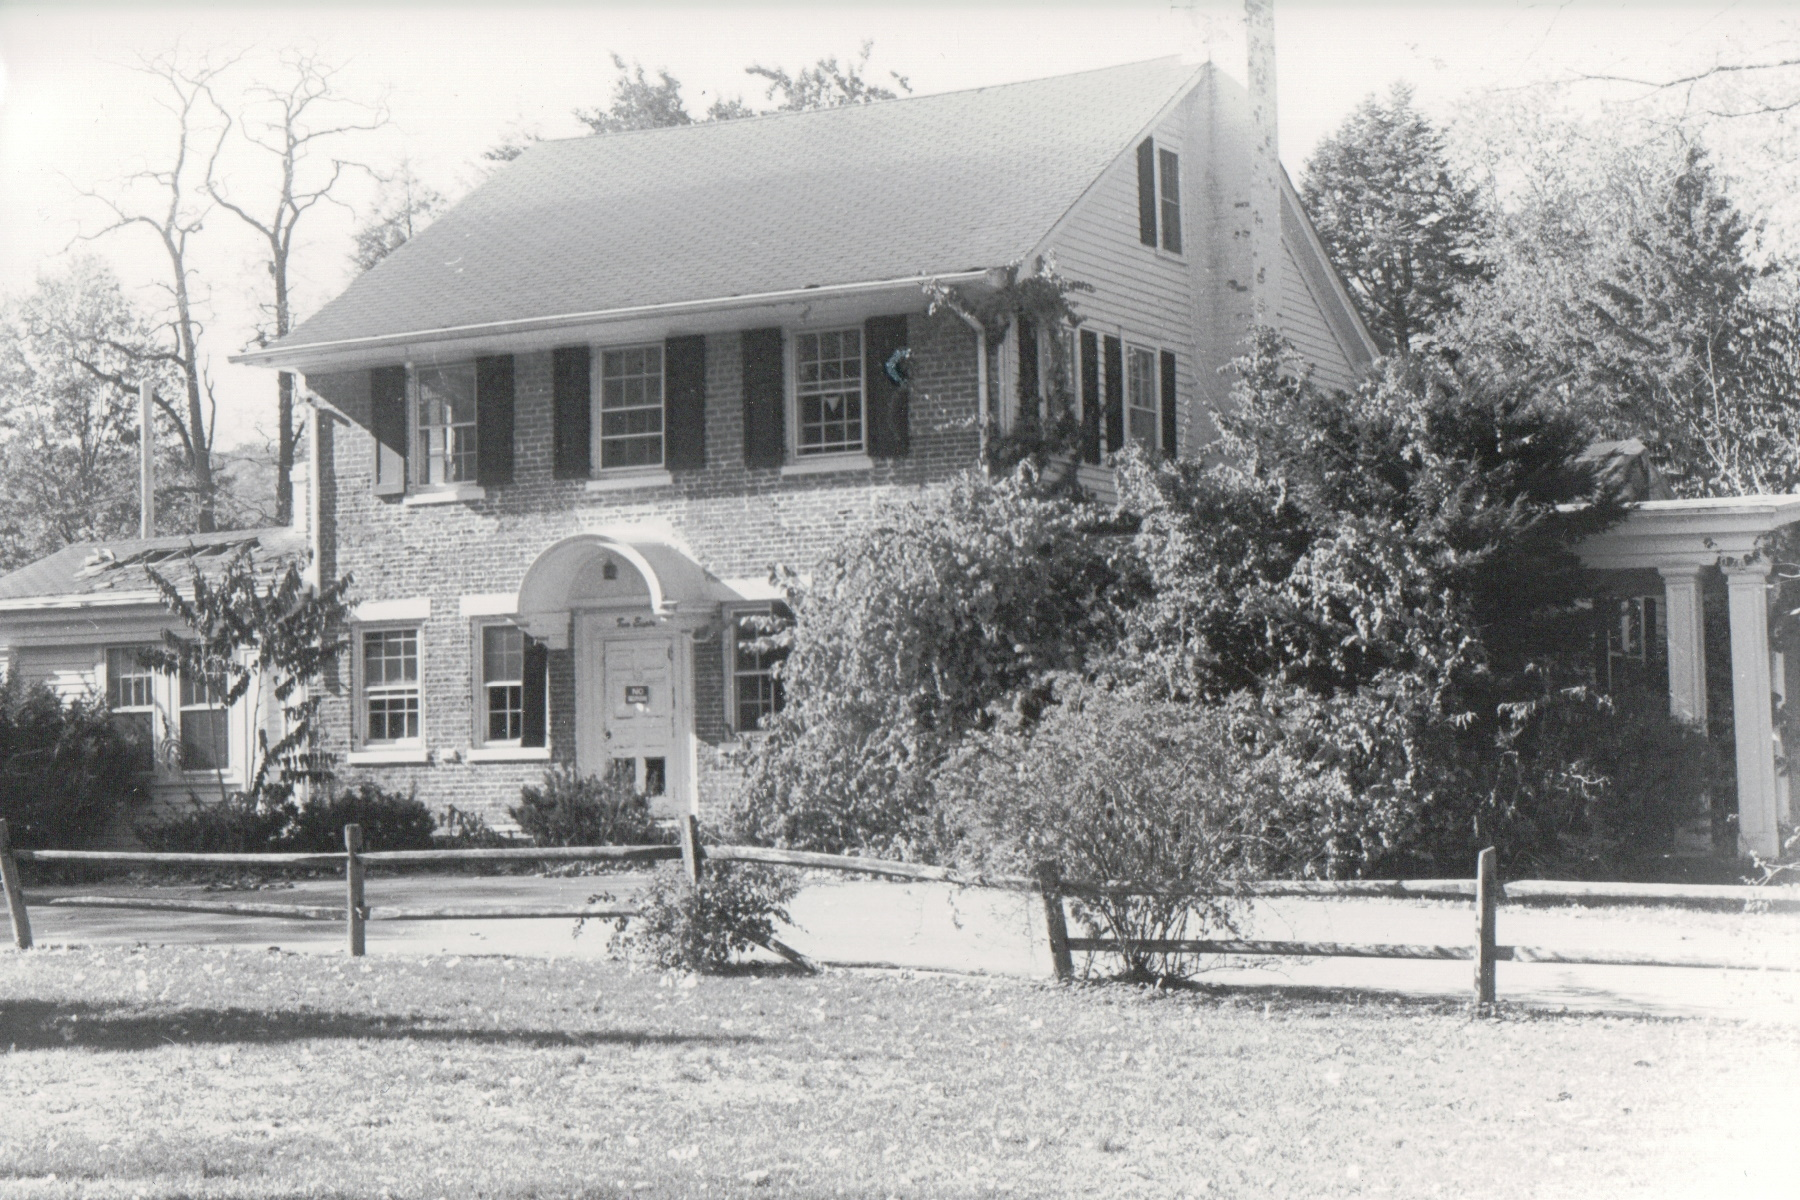 A black and white photograph of a colonial house from the street.